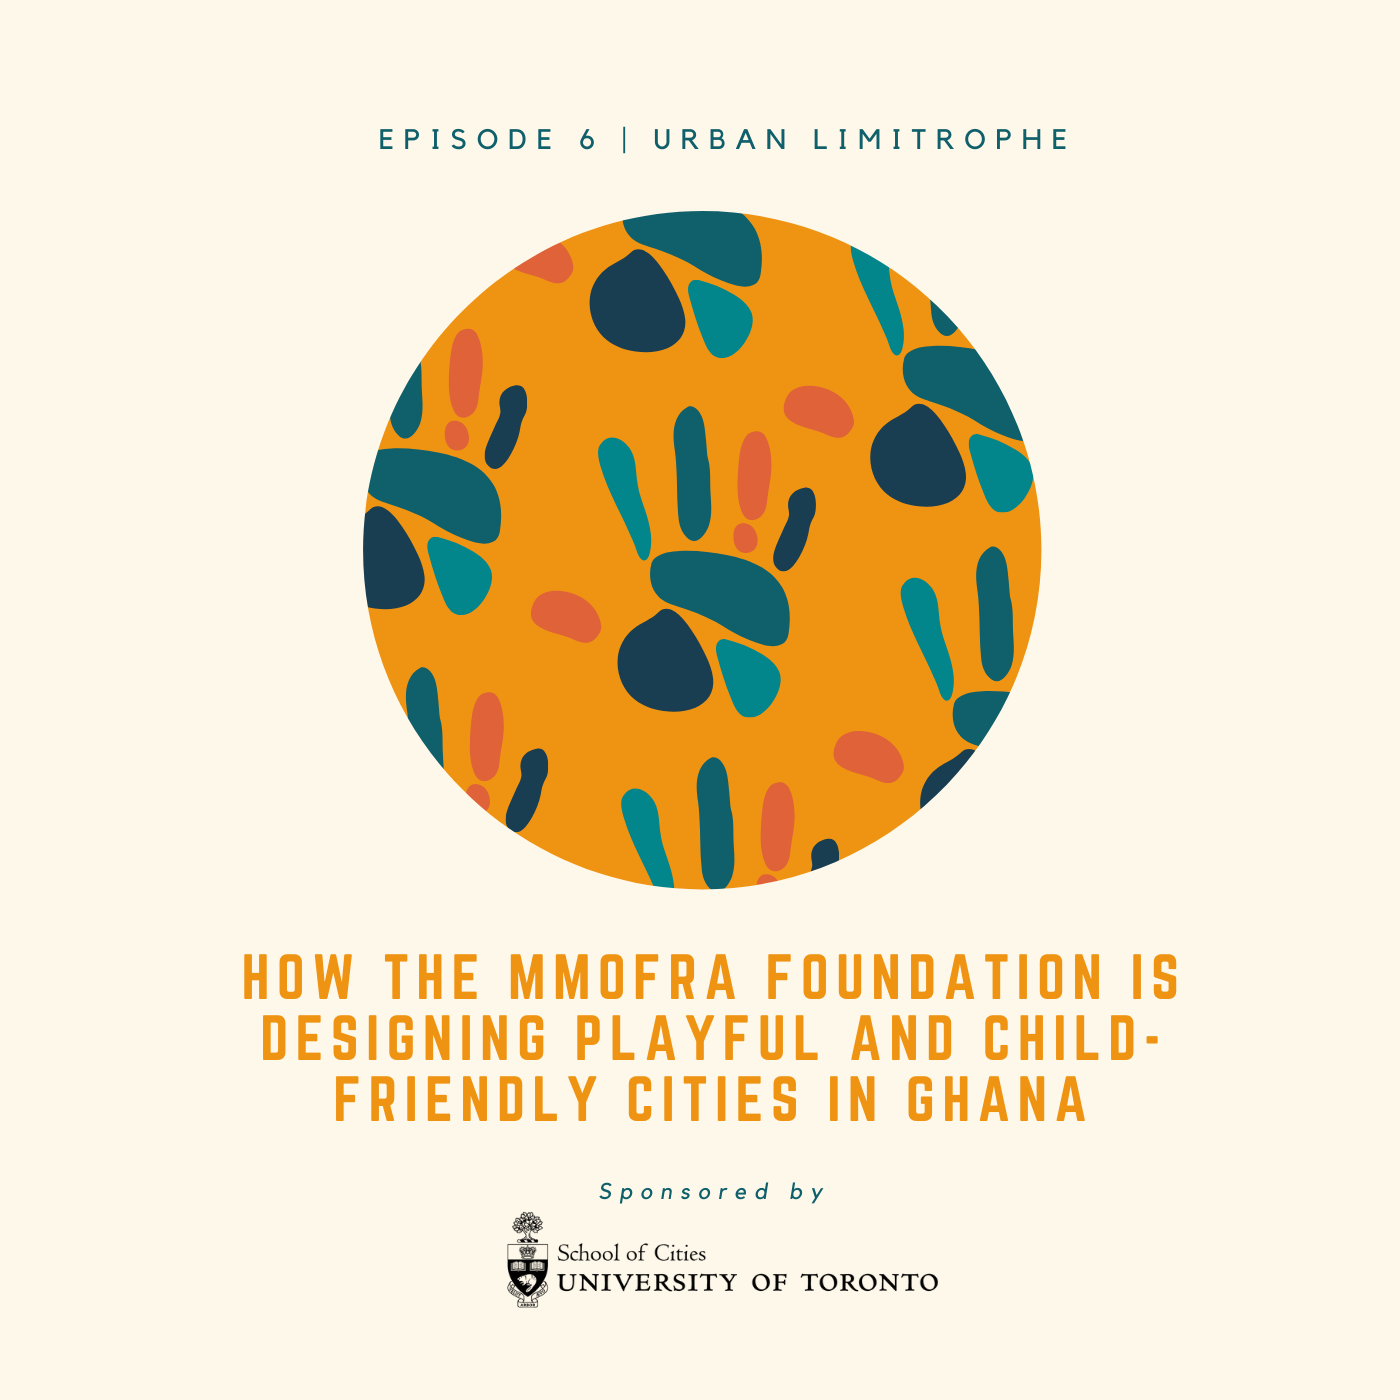 Episode 6: How the Mmofra Foundation is Designing Playful and Child-Friendly Cities in Ghana | Urban Limitrophe | #playfulcities #childfriendlycities #urbanchildhoods